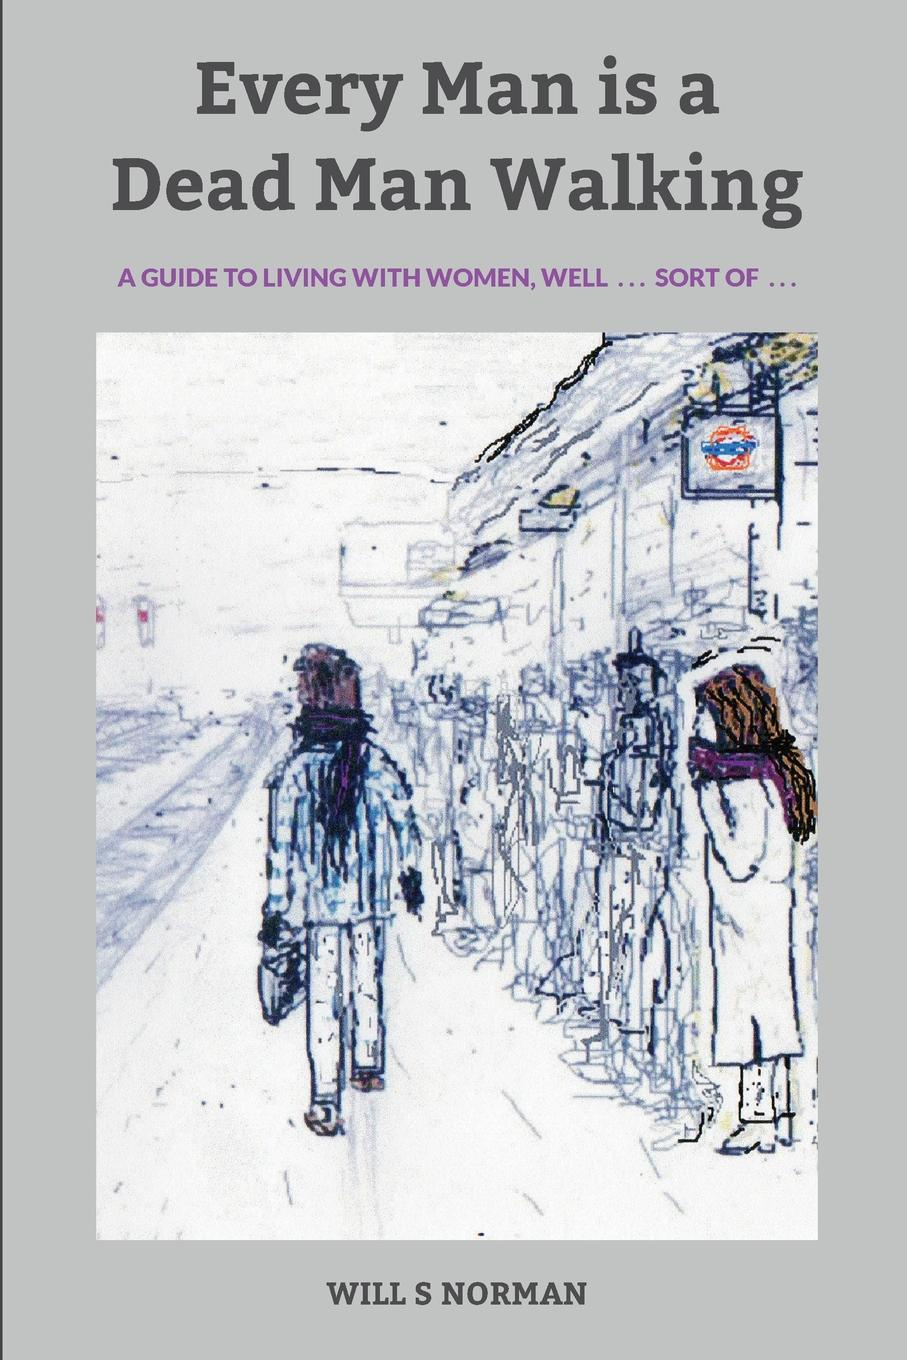 WILL S NORMAN Every Man is a Dead Man Walking. a guide to living with women, well . . . sort of . . .